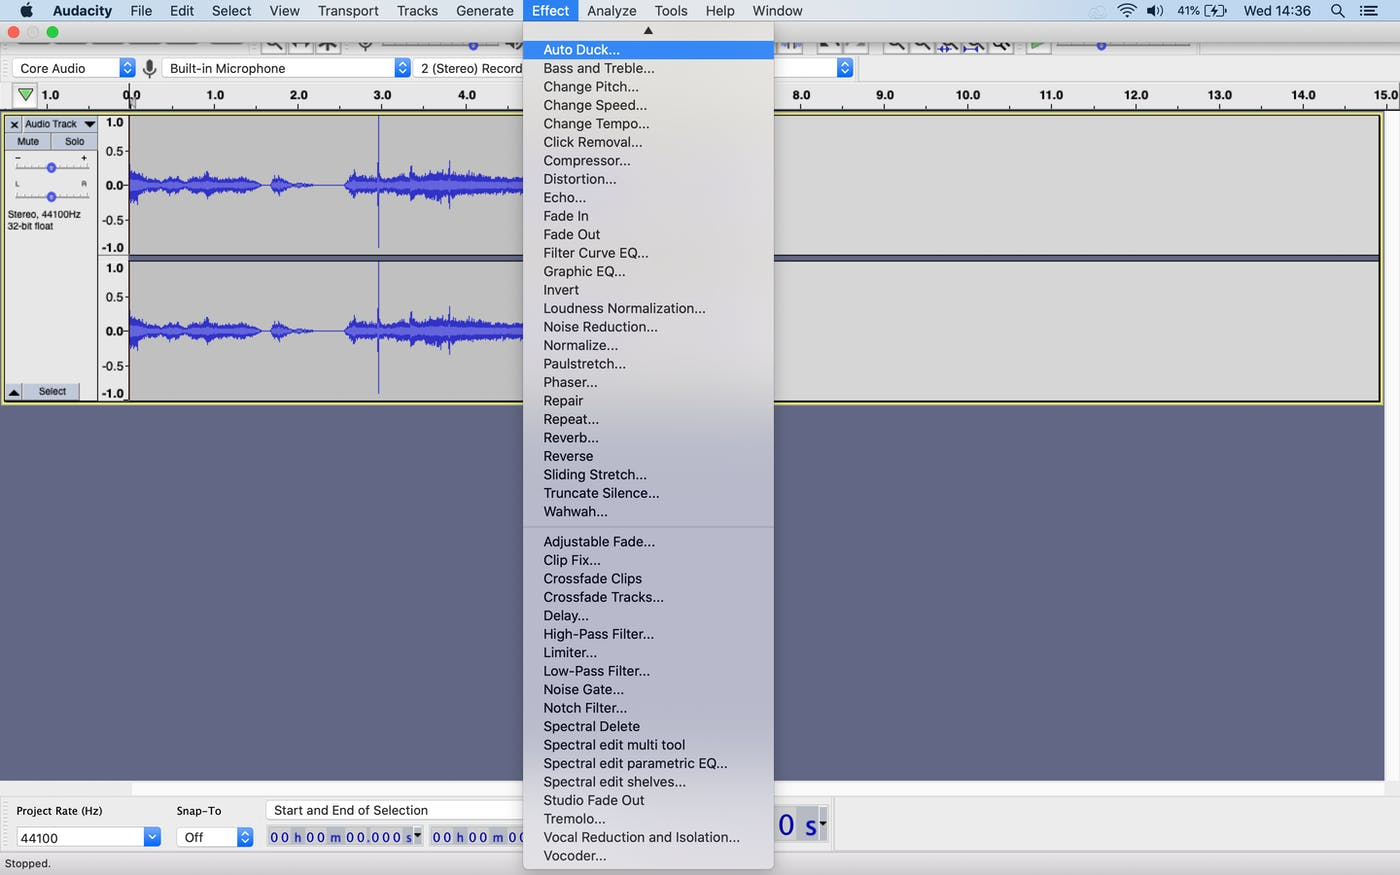 How to Improve Audio Quality in Audacity